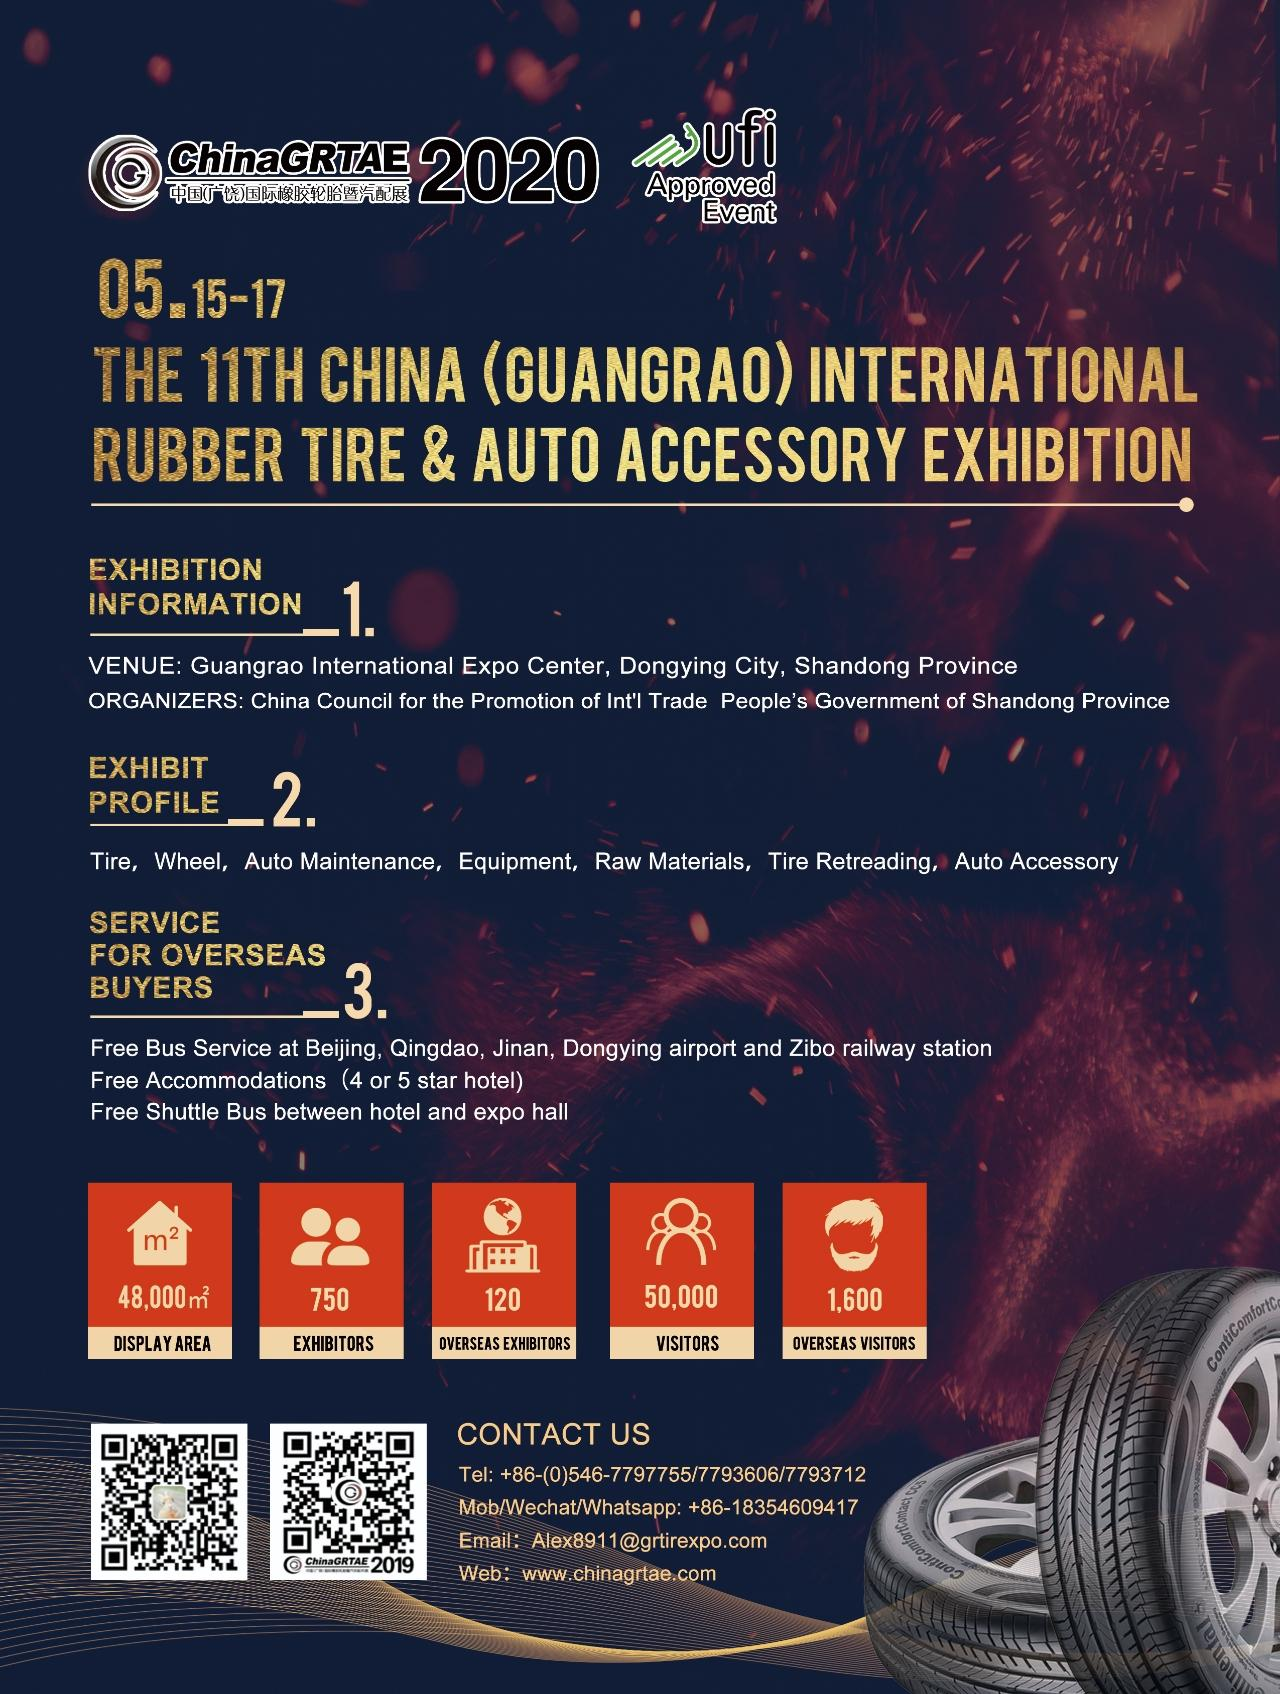 The 11th China (Guangrao) International Rubber Tire & Auto Accessory Exhibition (China GRTAE) Looking Forward to Your Presence